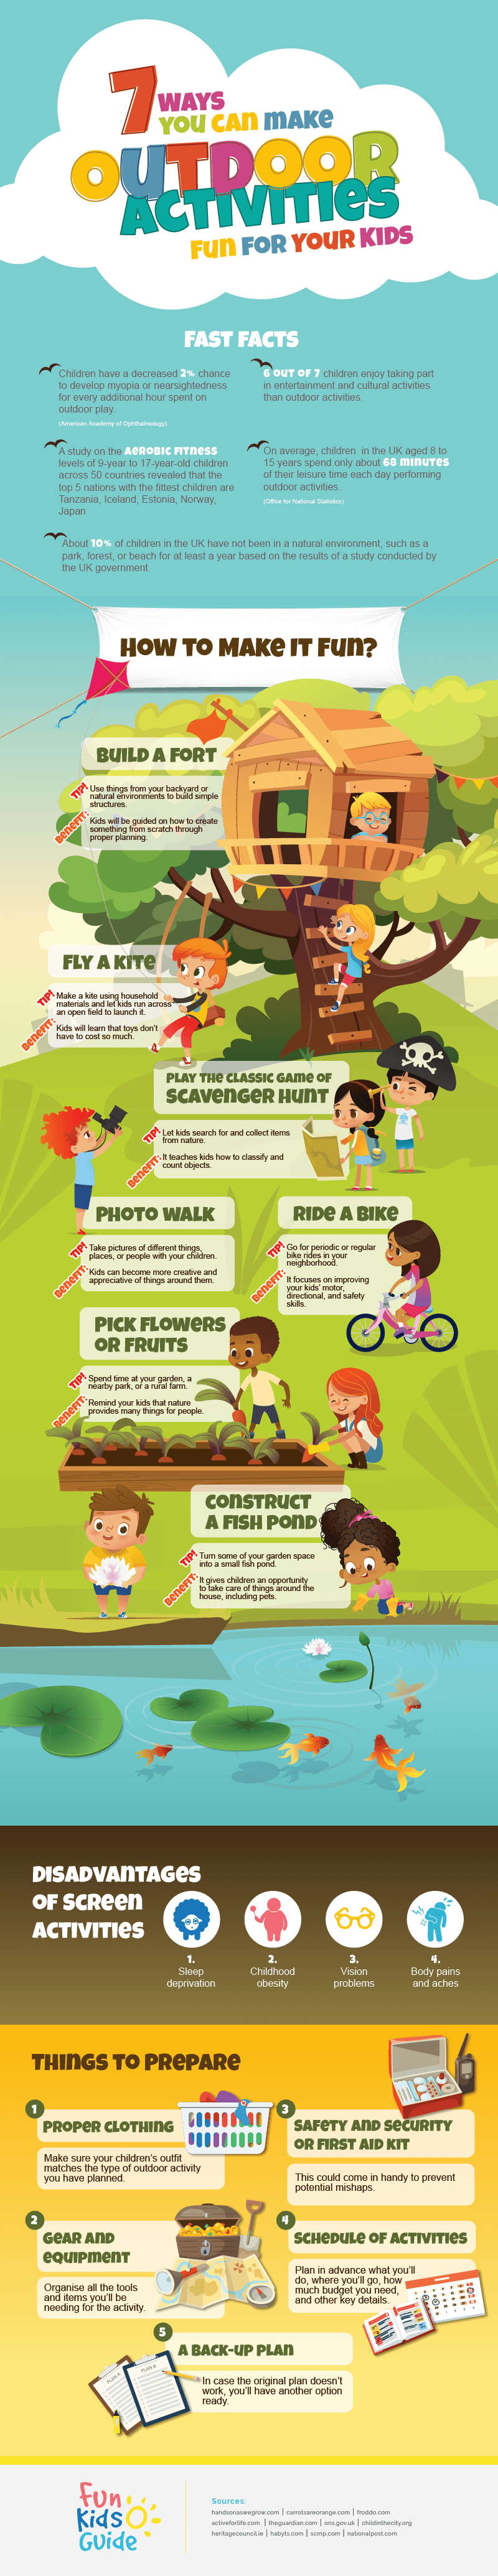 7-Ways-You-Can-Make-Outdoor-Activities-Fun-for-Your-Kids1